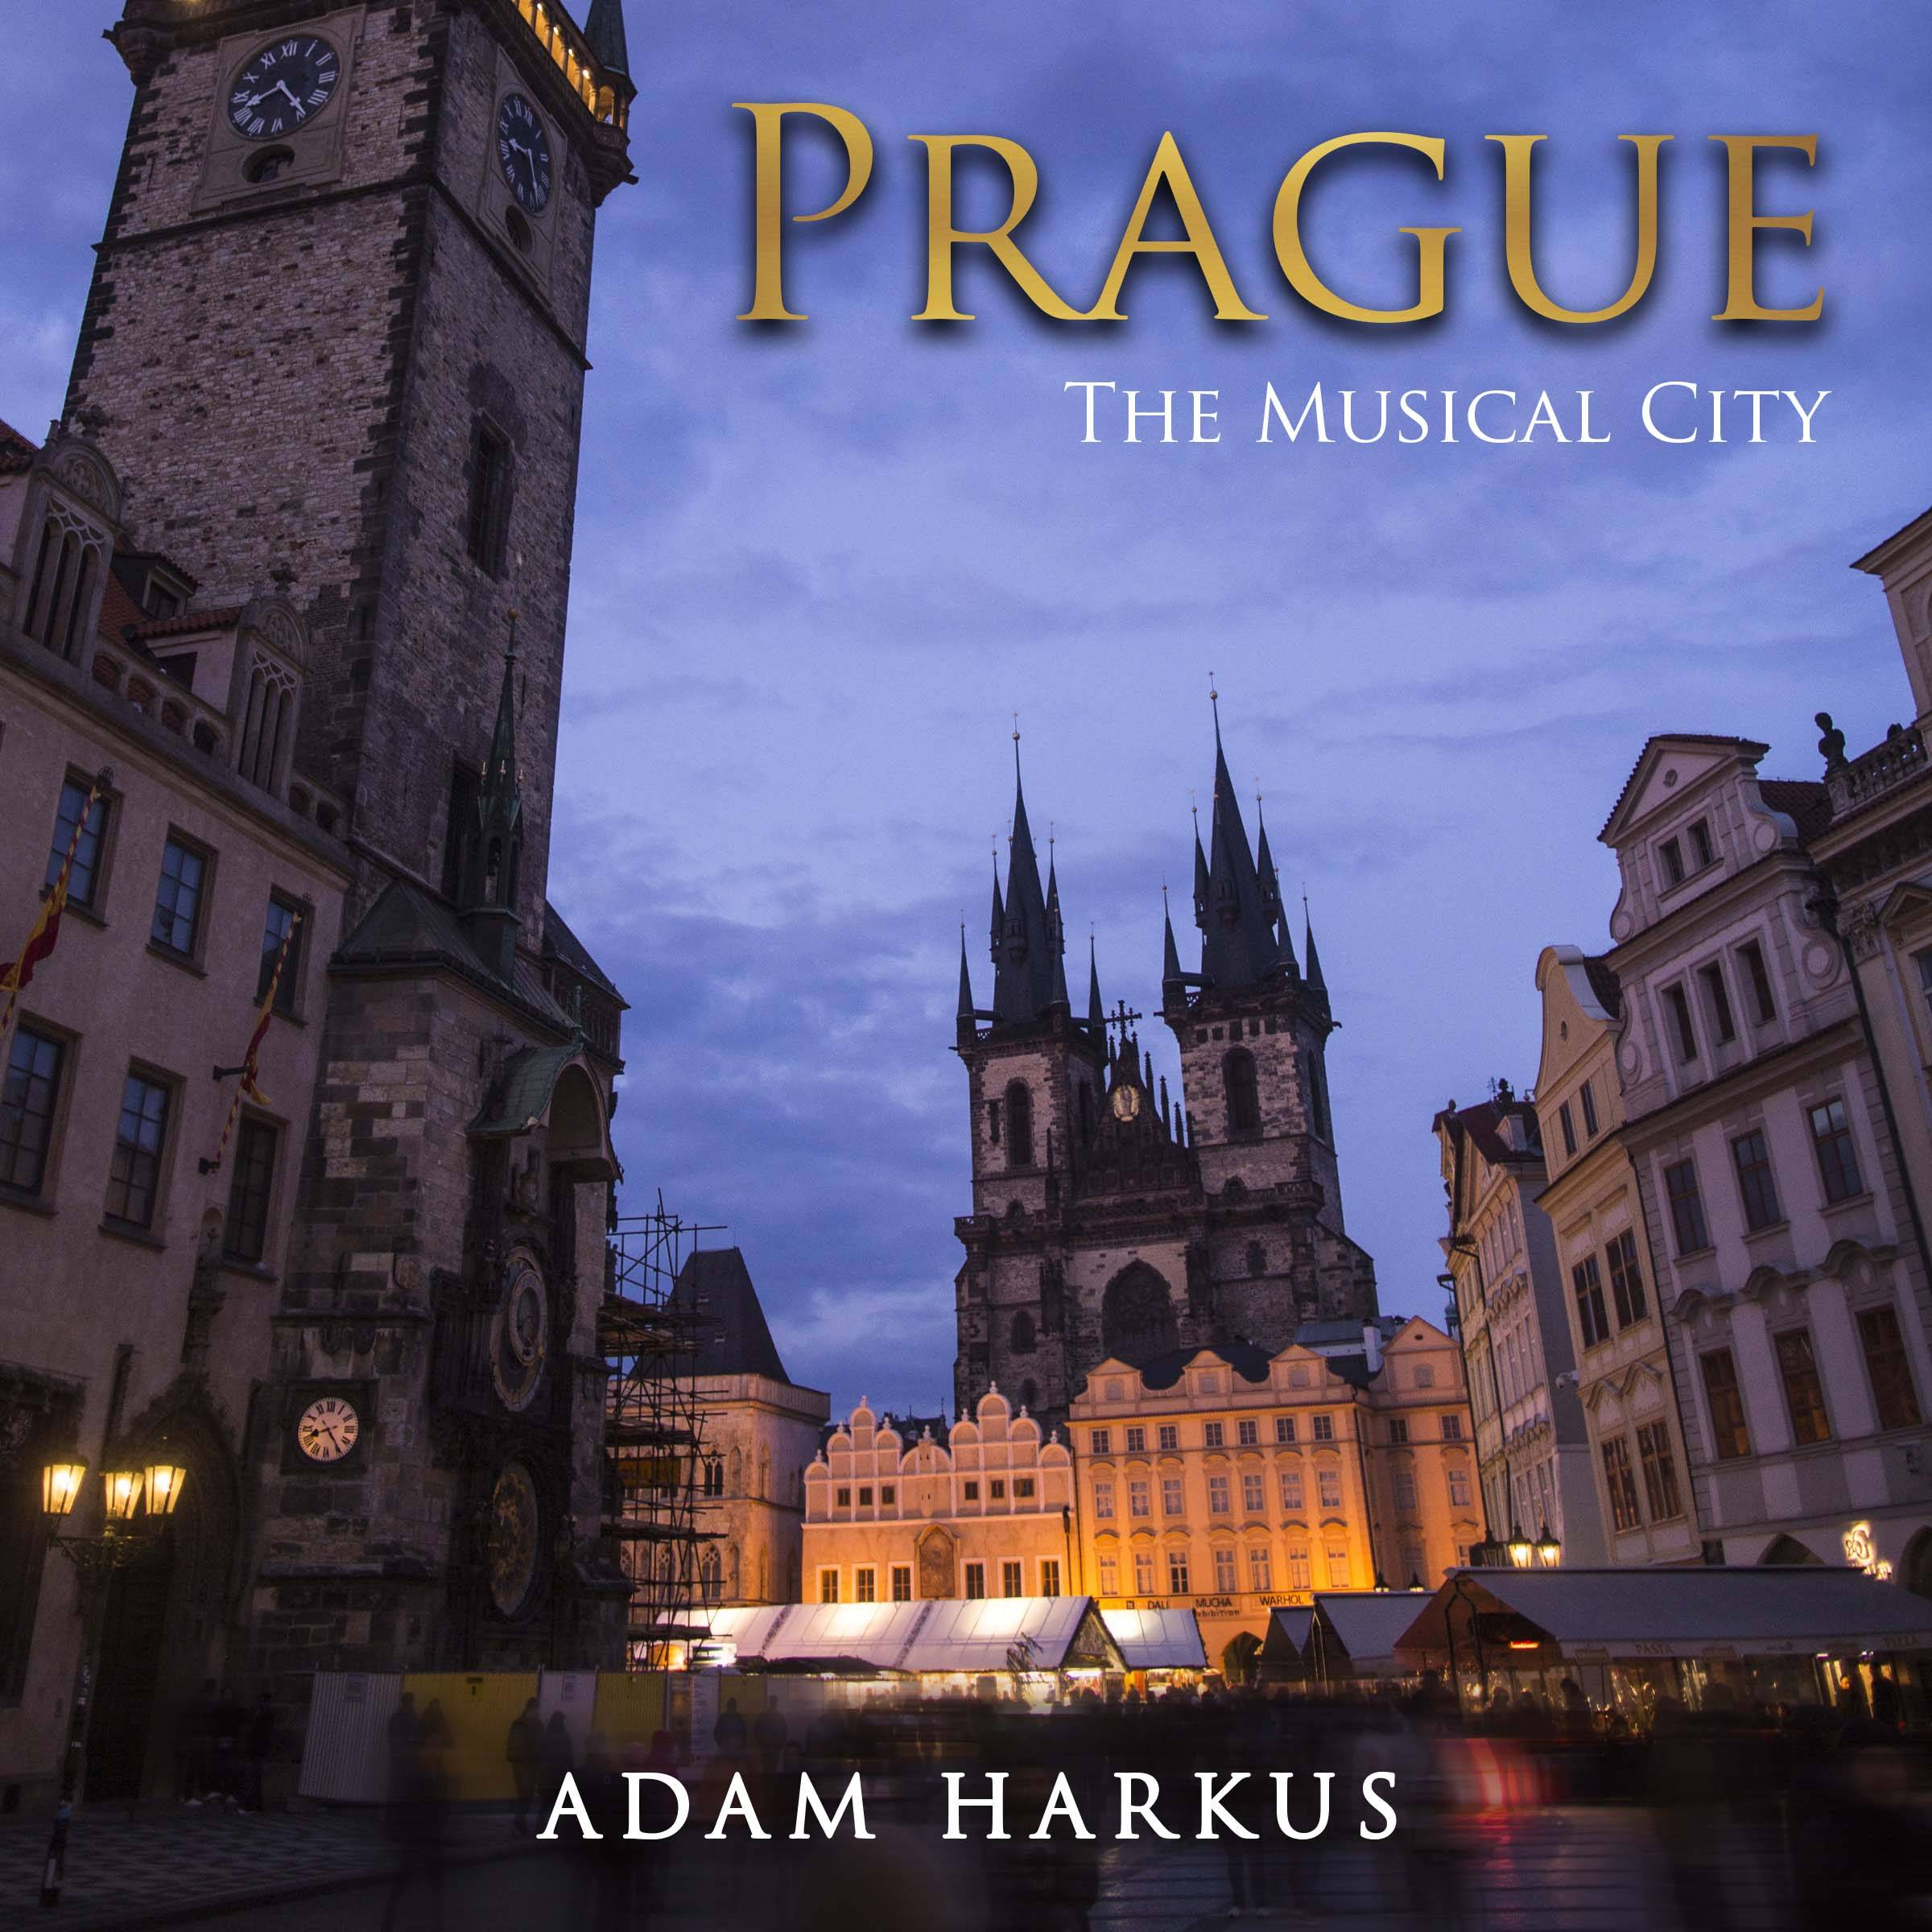 Prague: The Musical City. Special offer starts Today!!! - The Blogging Musician